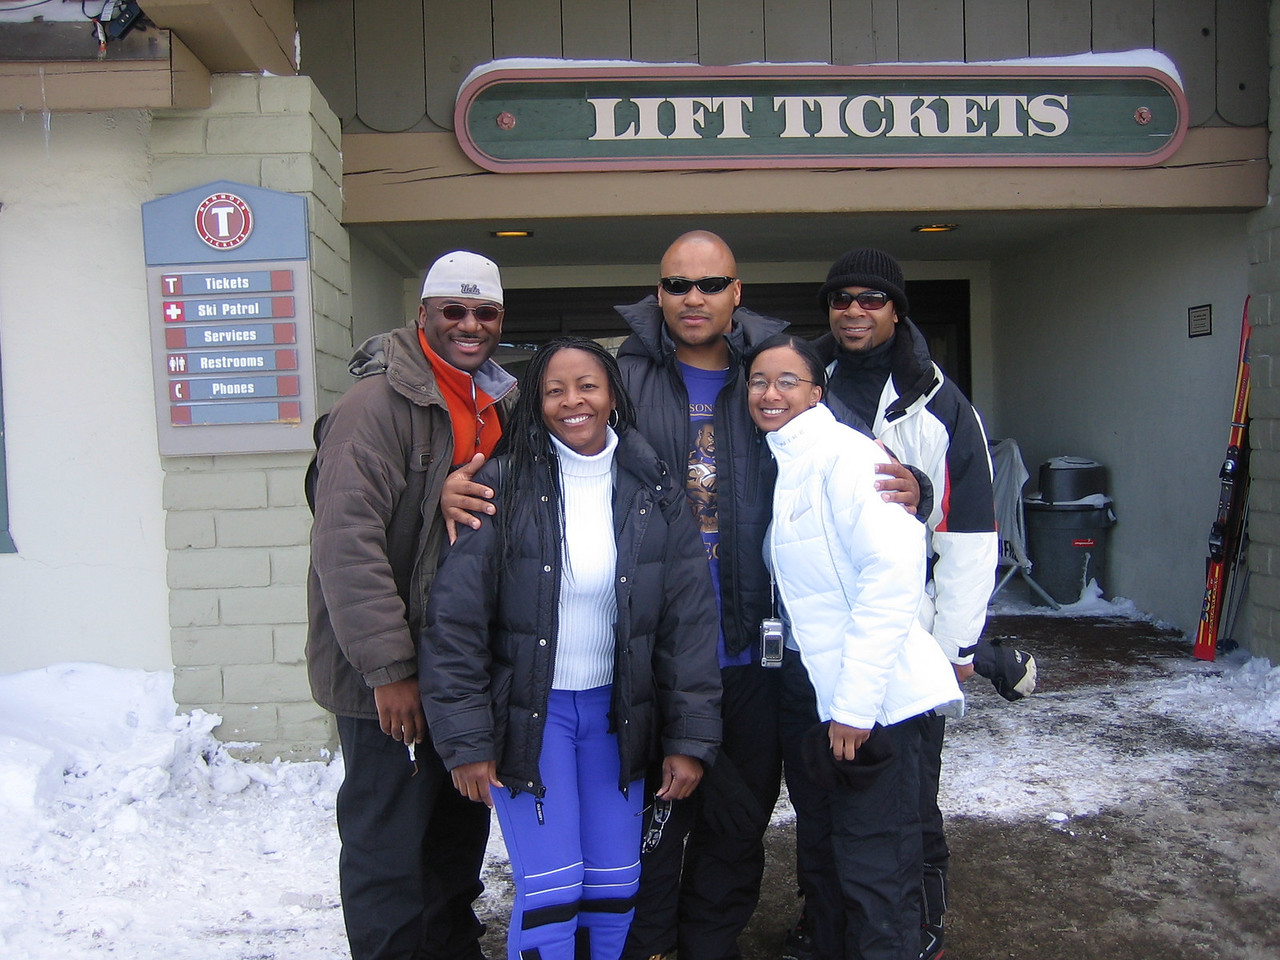 We are ready to buy our tickets and hit the slopes